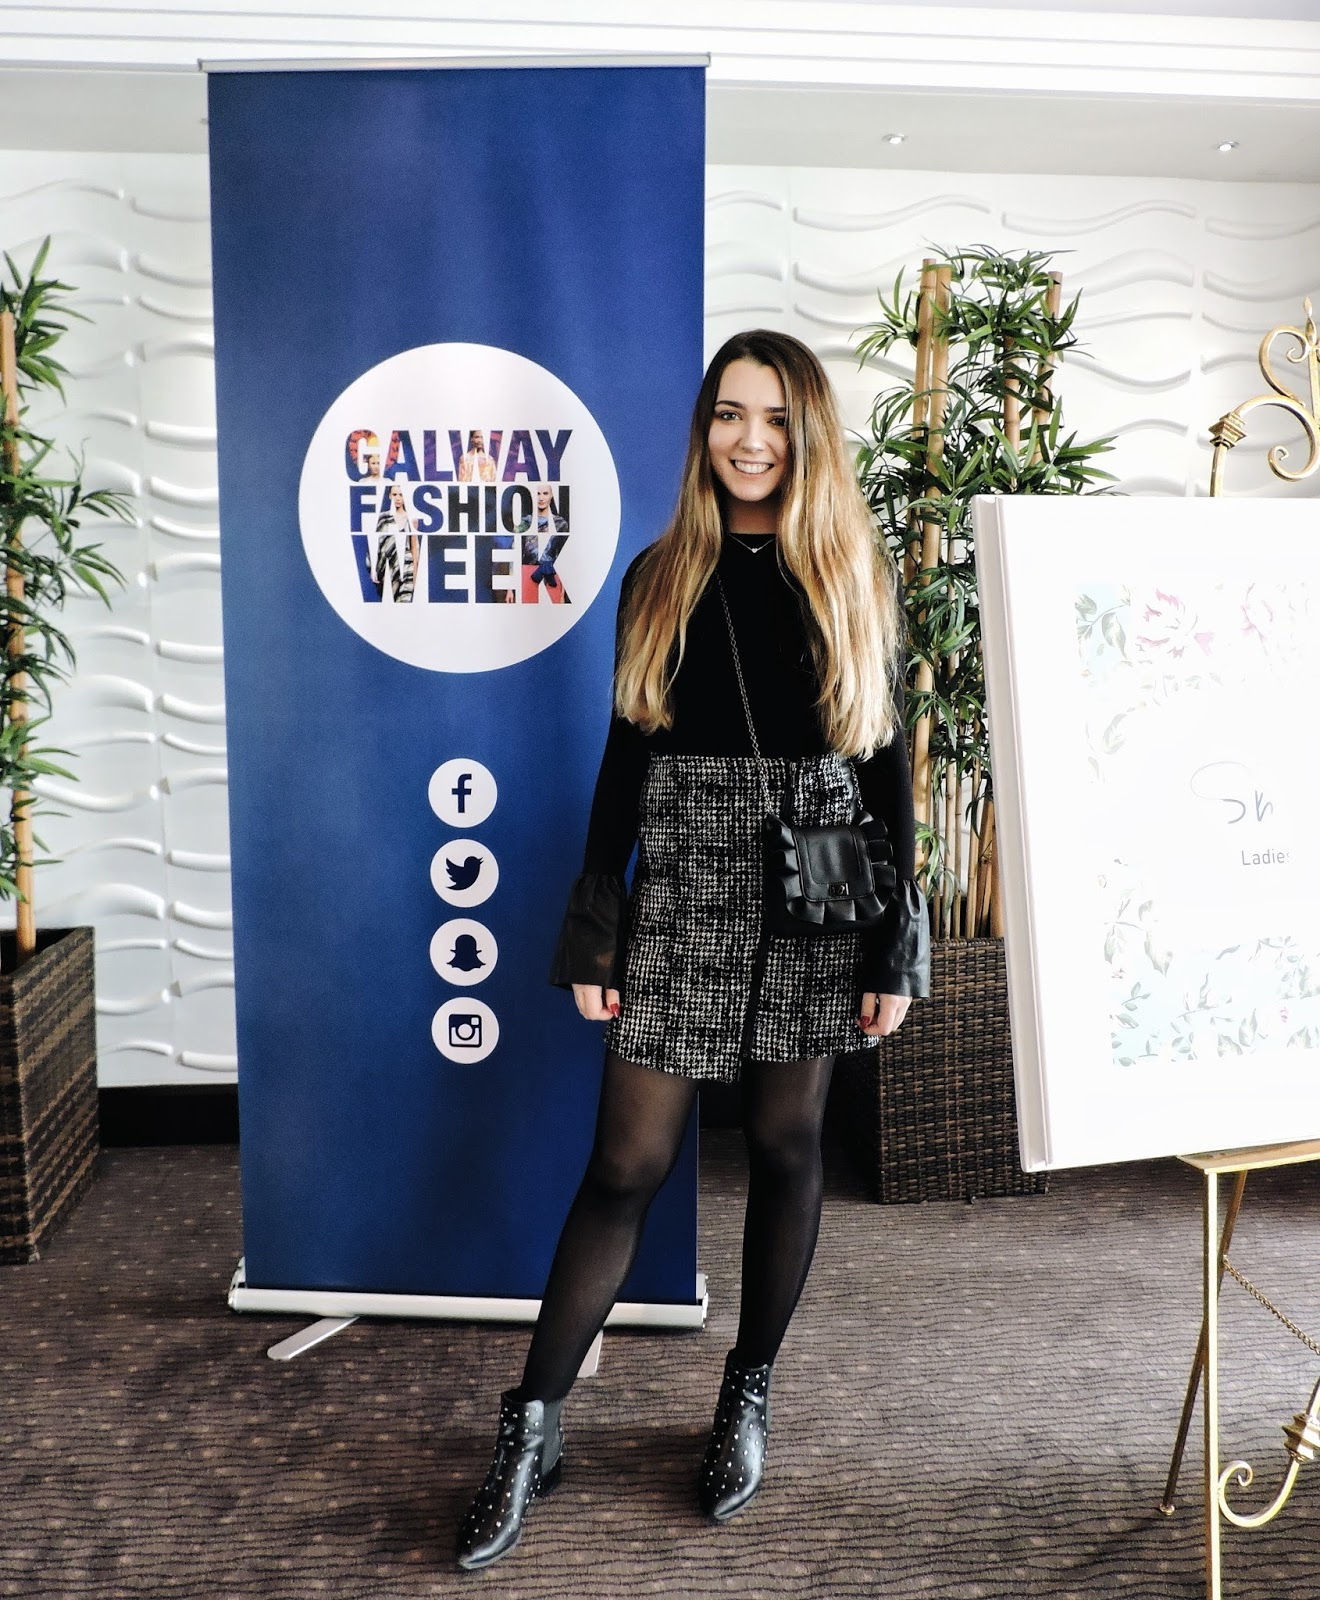 Fashion Has Come To Galway With The Galway Fashion Trail!